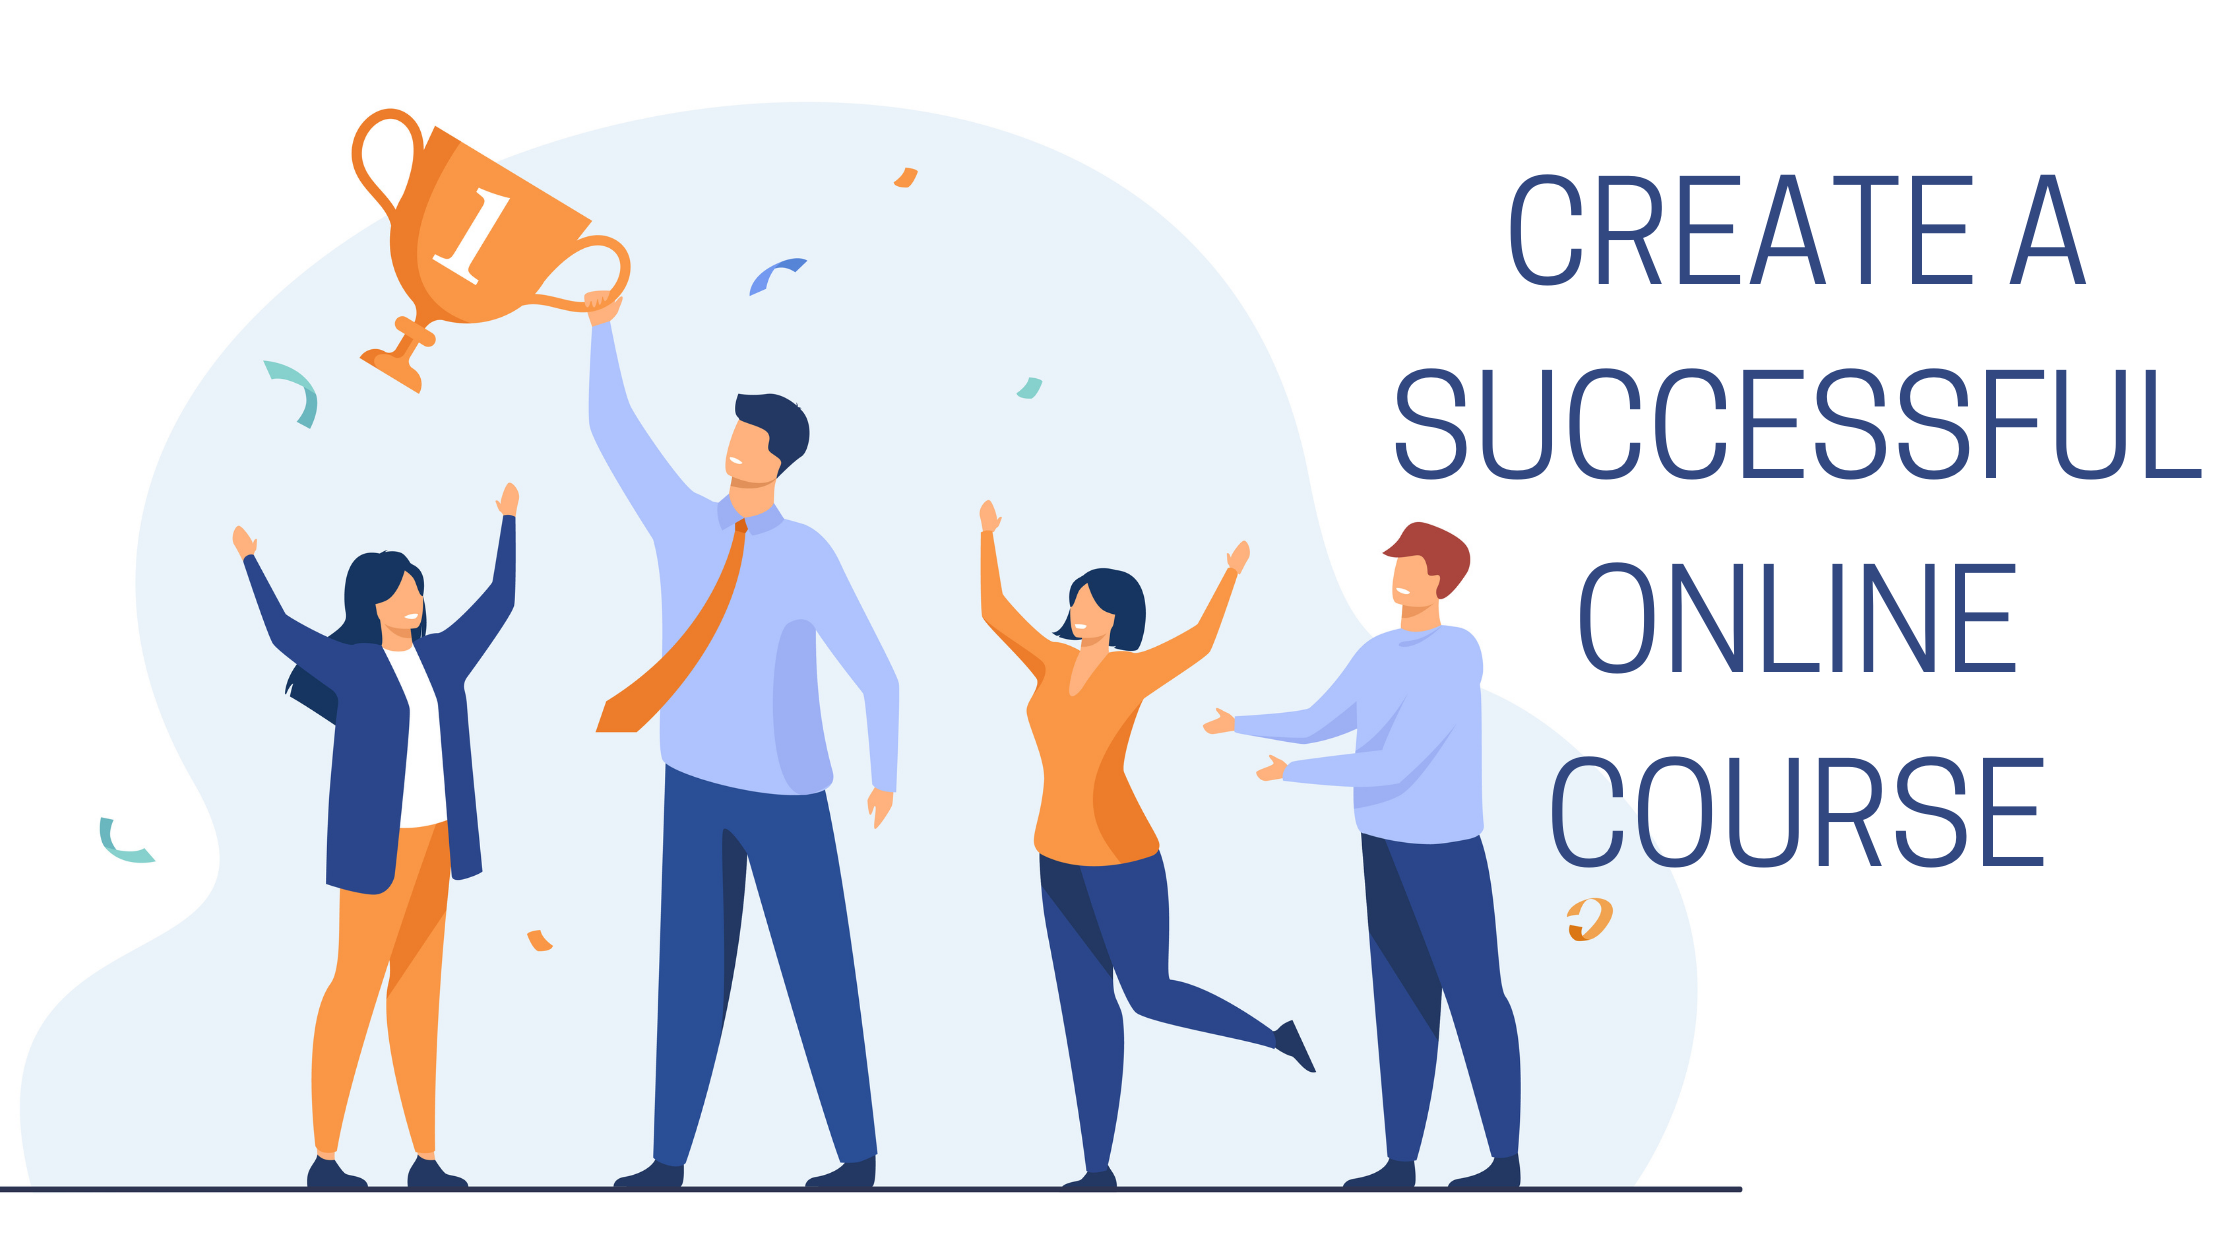 How to create a successful online course